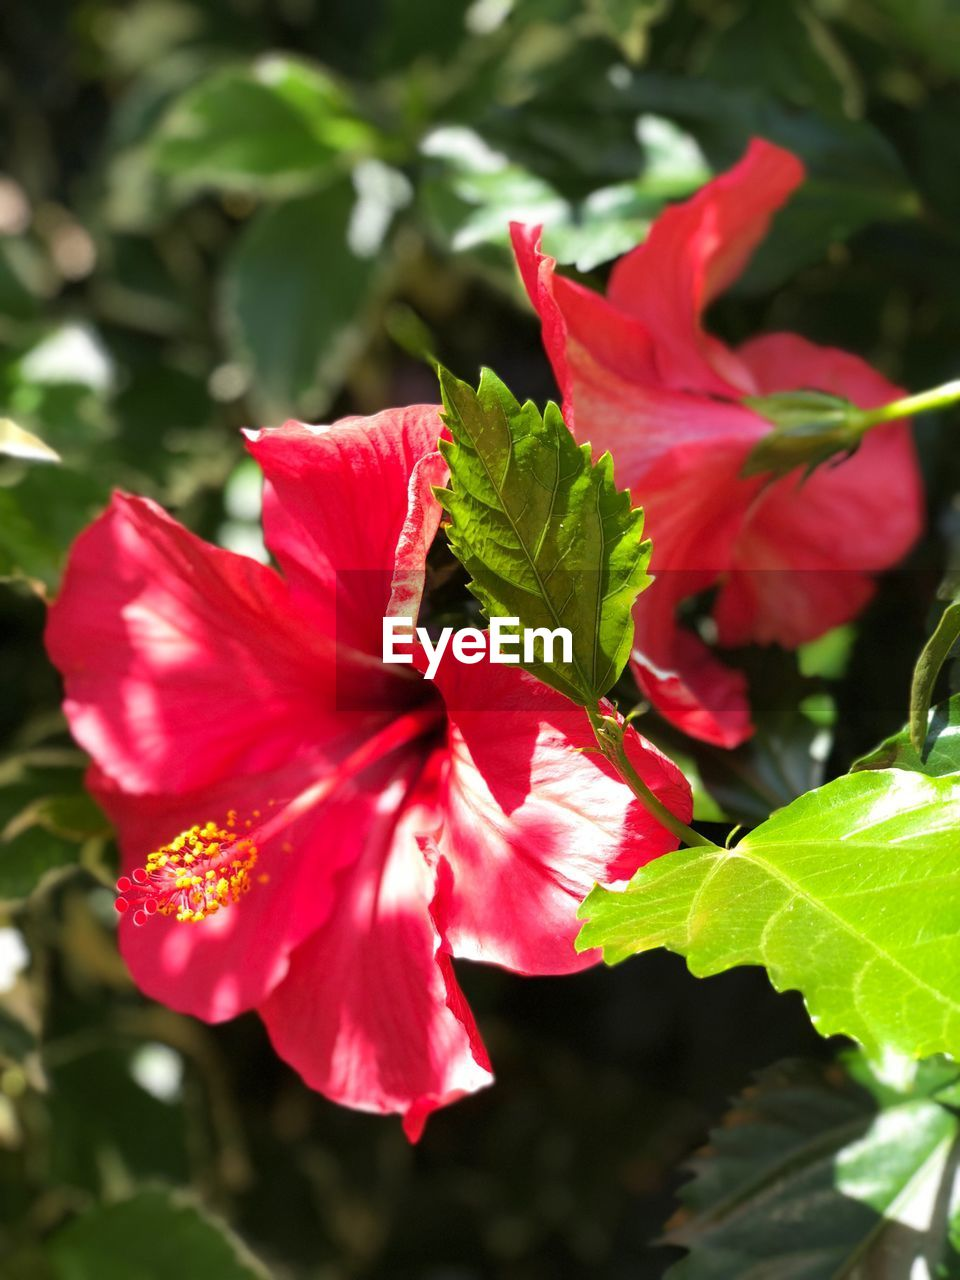 leaf, growth, fragility, flower, petal, nature, beauty in nature, plant, freshness, green color, outdoors, red, day, flower head, no people, hibiscus, pink color, close-up, blooming